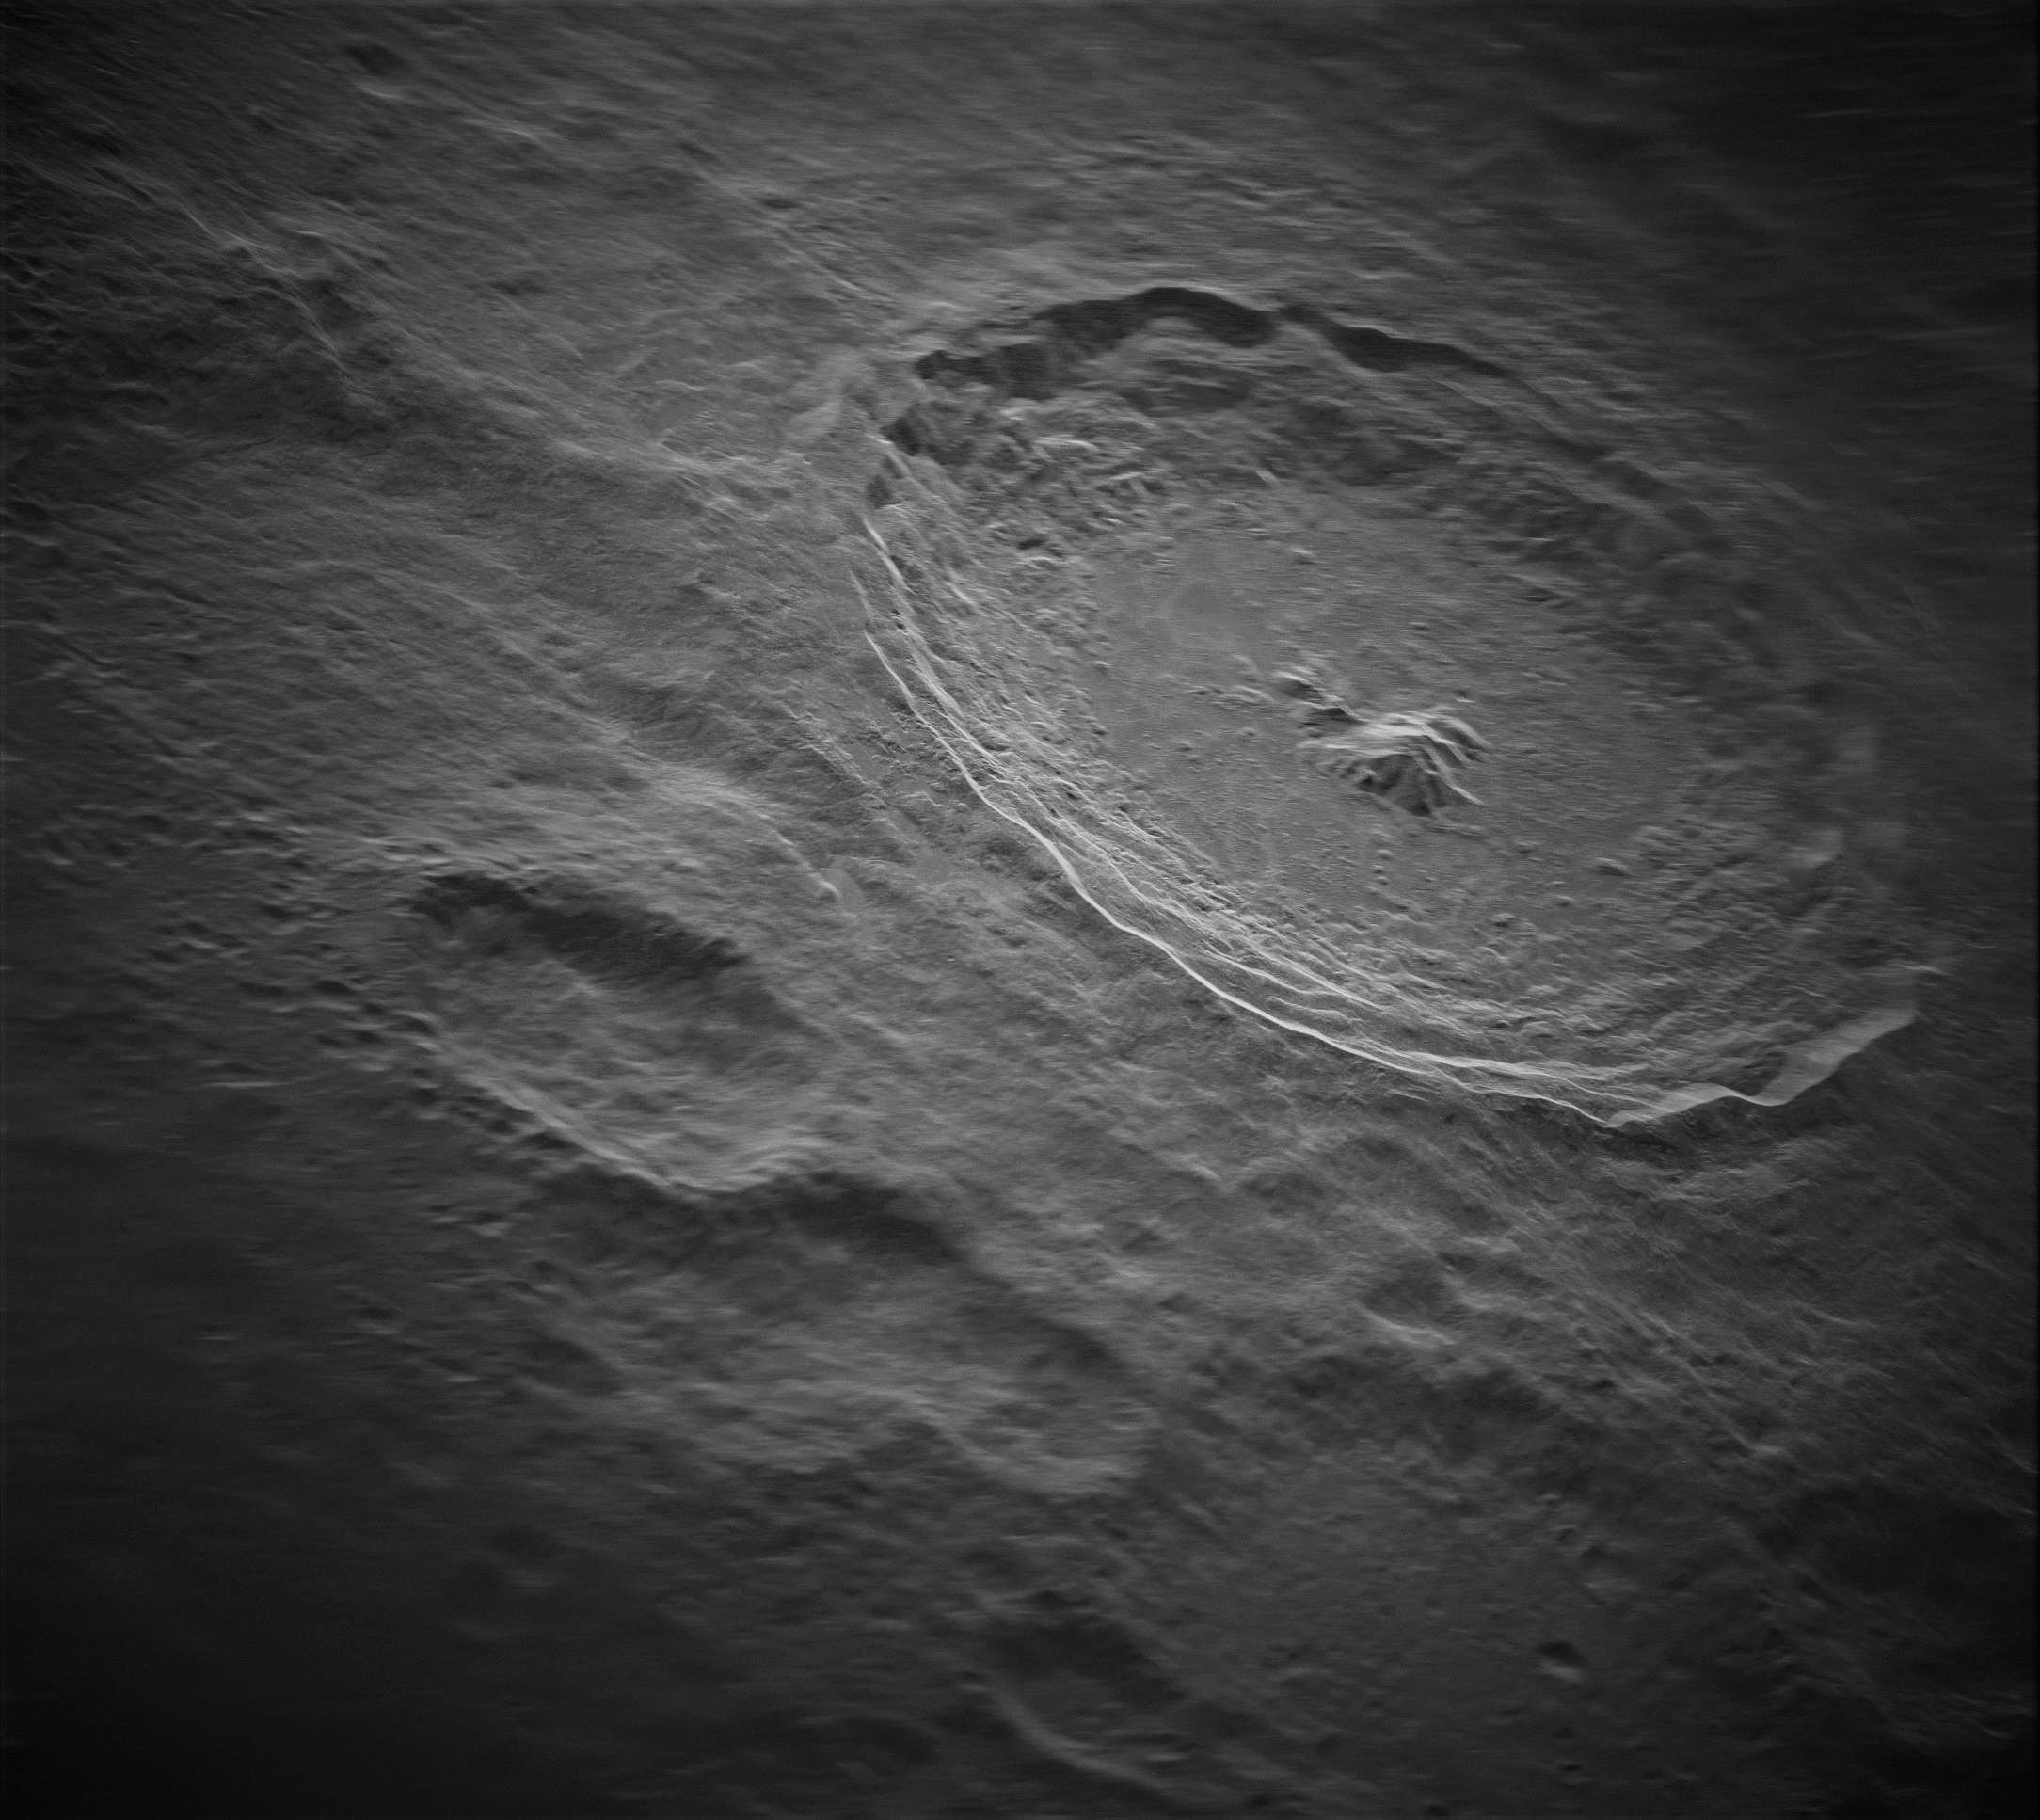 Moon's Tycho Crater Revealed in Intricate Detail – Powerful New Radar Technology Will Reveal Secrets of the Solar System - SciTechDaily